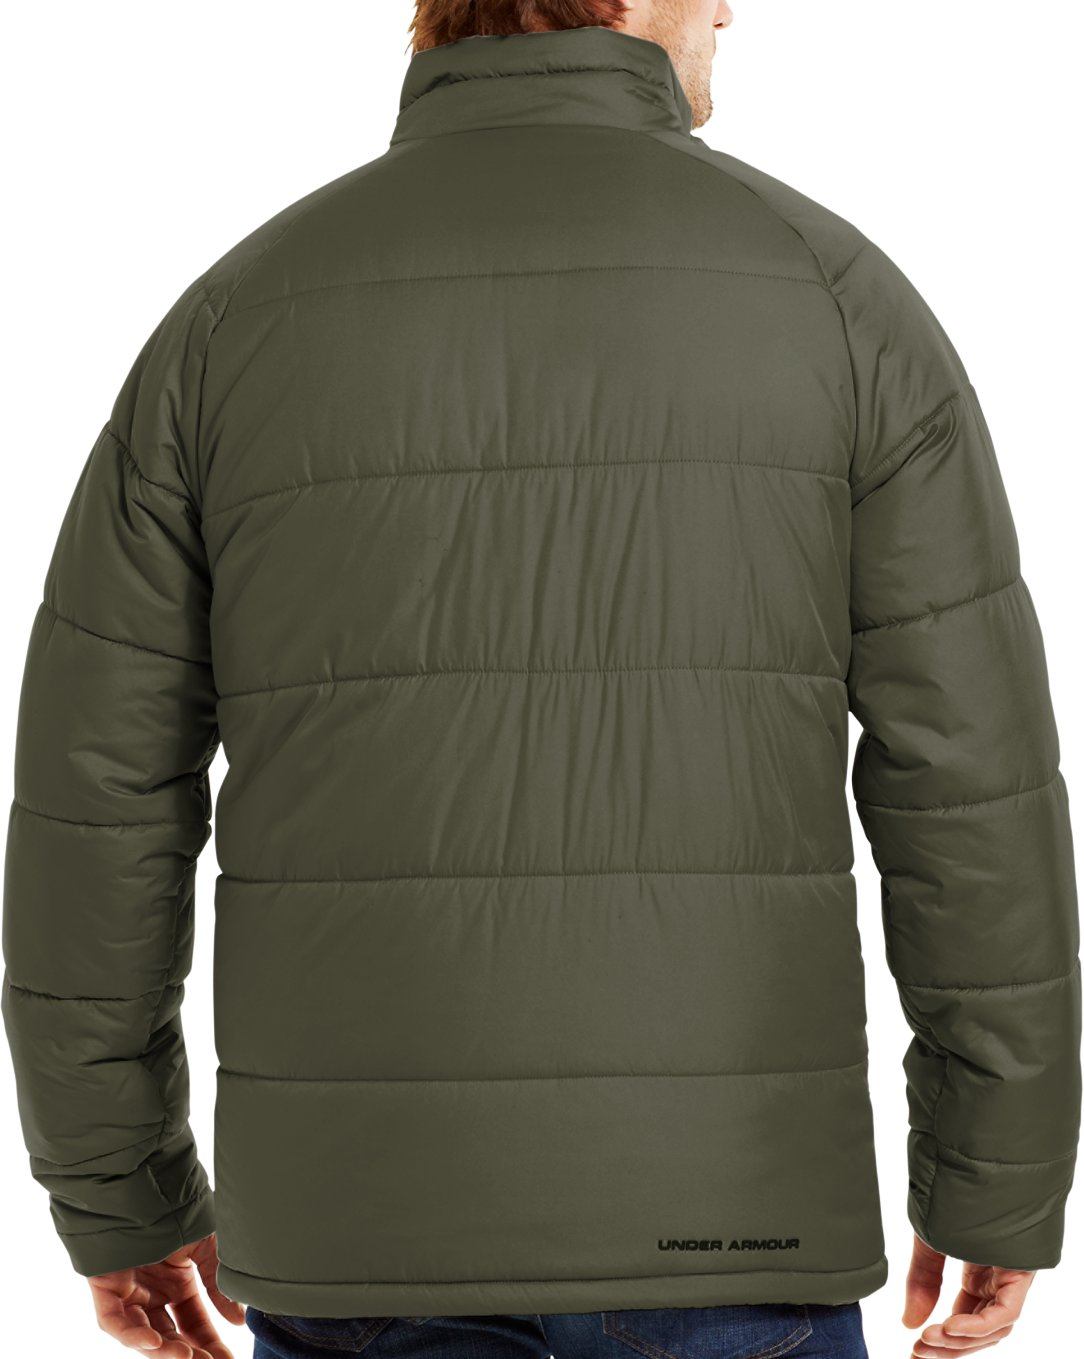 Men's ColdGear® Infrared Alpinlite Max Jacket, GREENHEAD, Back